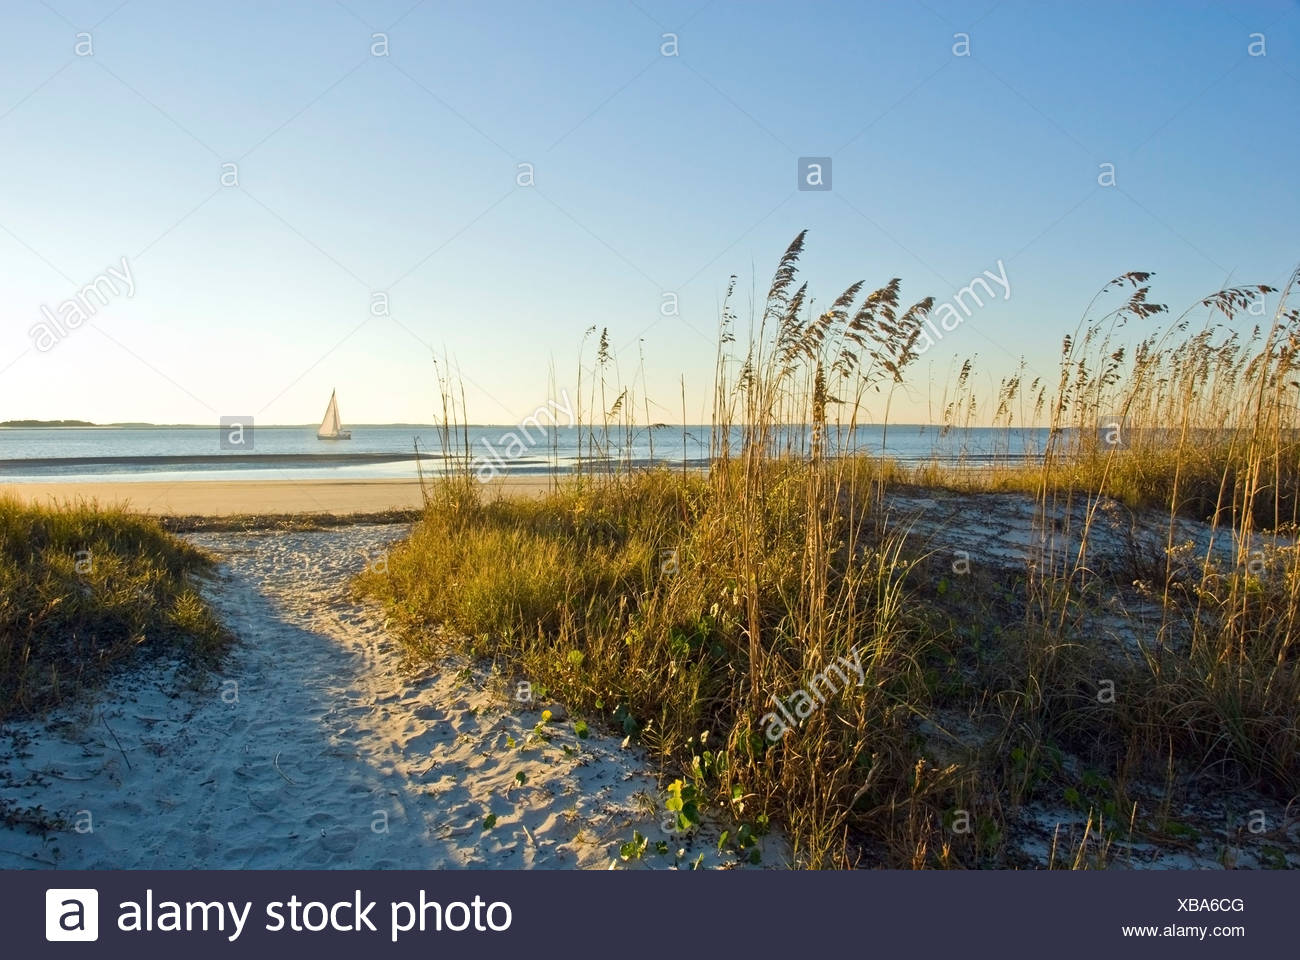 A sand pathway leads to the beach with a sailboat in the background on Hilton Head Island, SC. - Stock Image